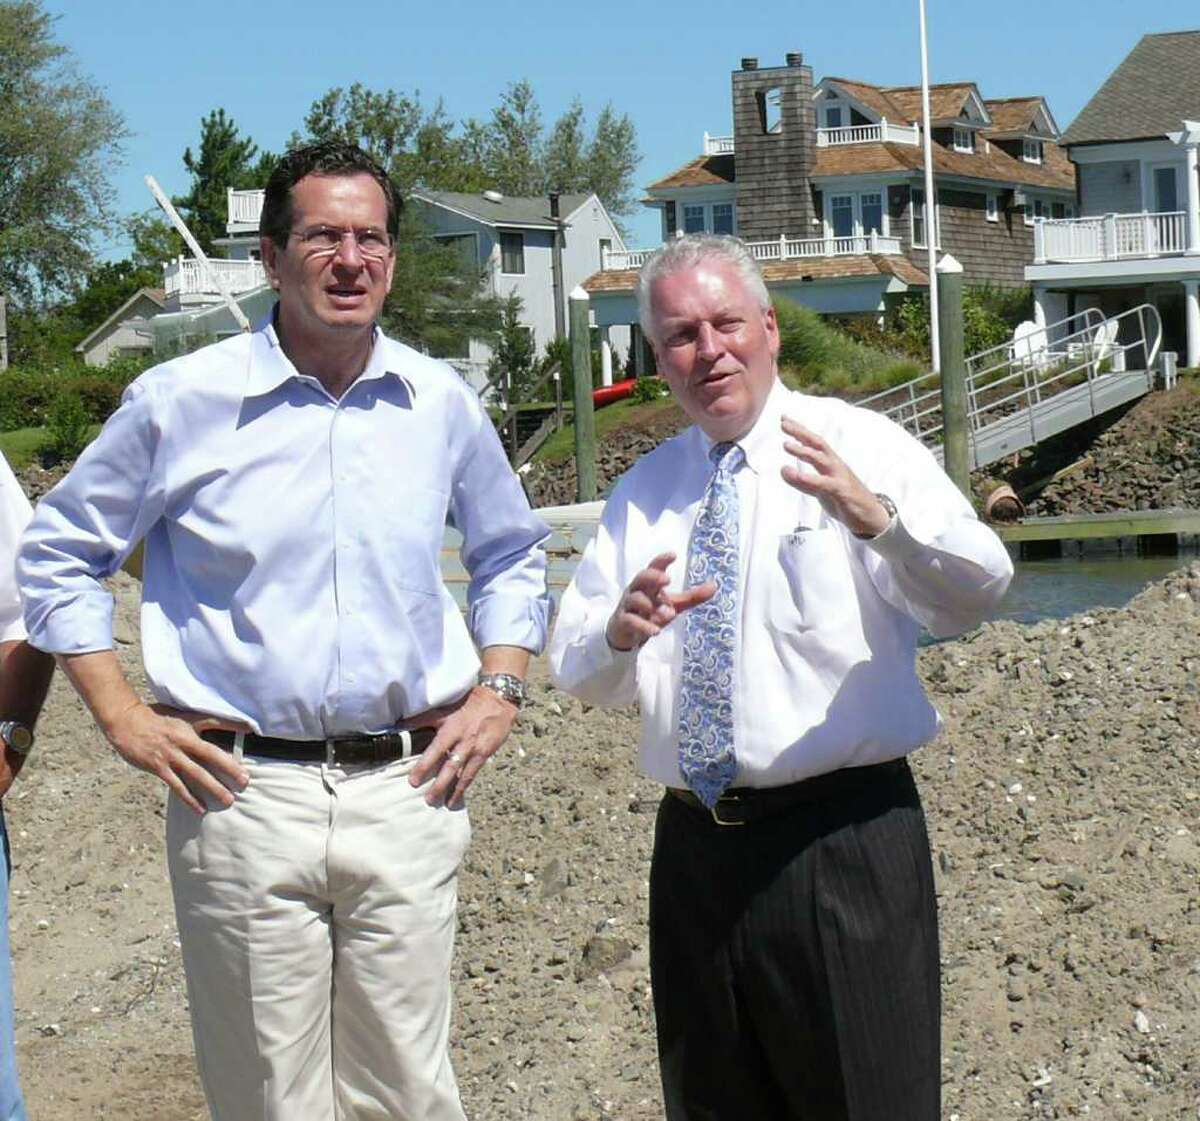 Gov. Dannel Malloy, left, gets a tour from interim First Selectman Michael Tetreau of some of the beach areas damaged by Hurricane Irene.